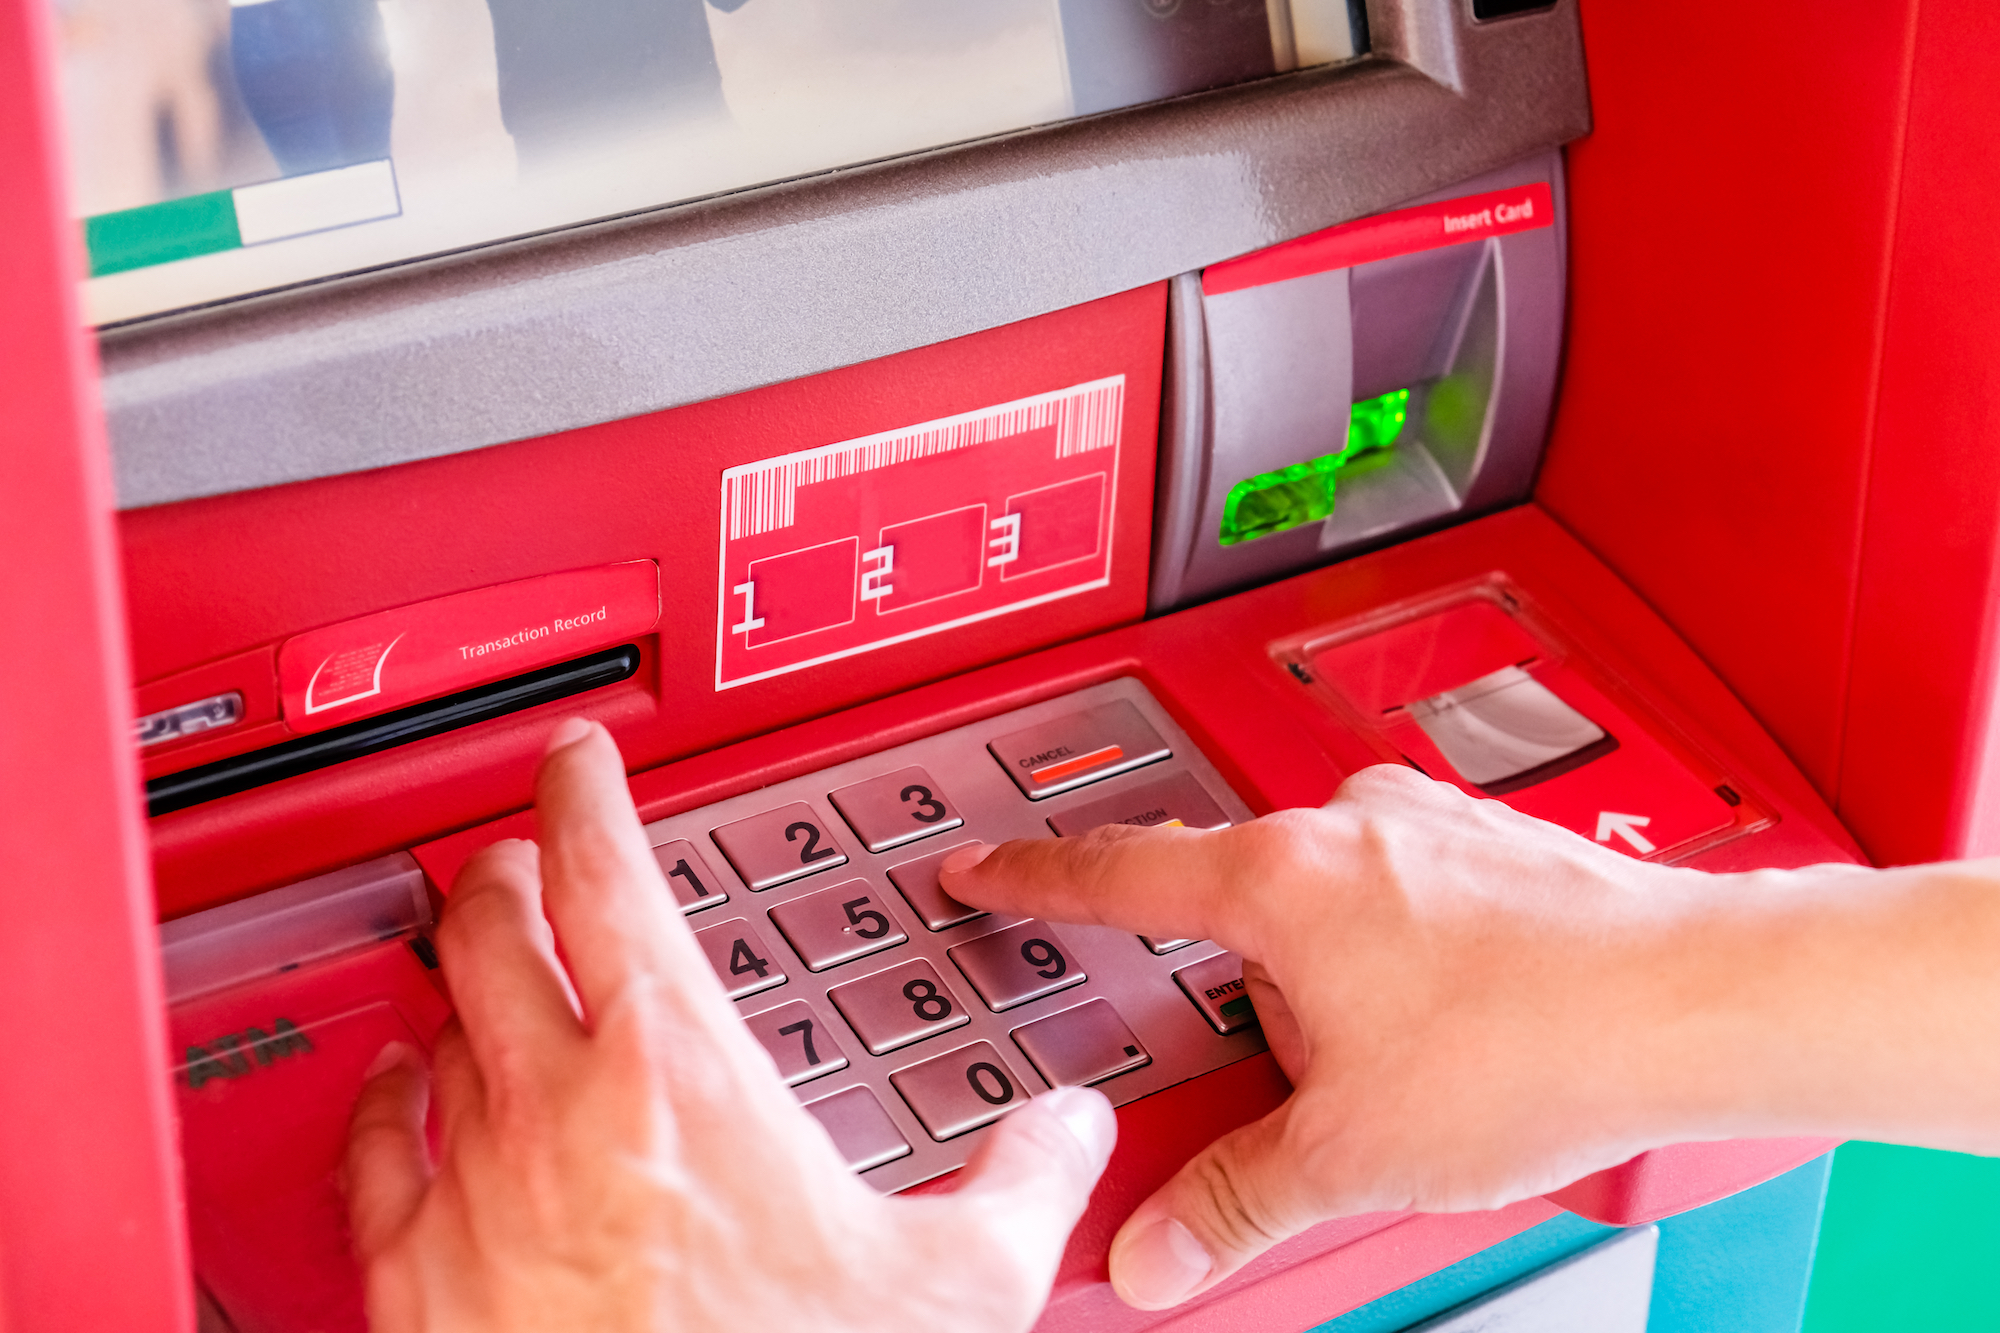 ATM Network — Struthers Federal Credit Union